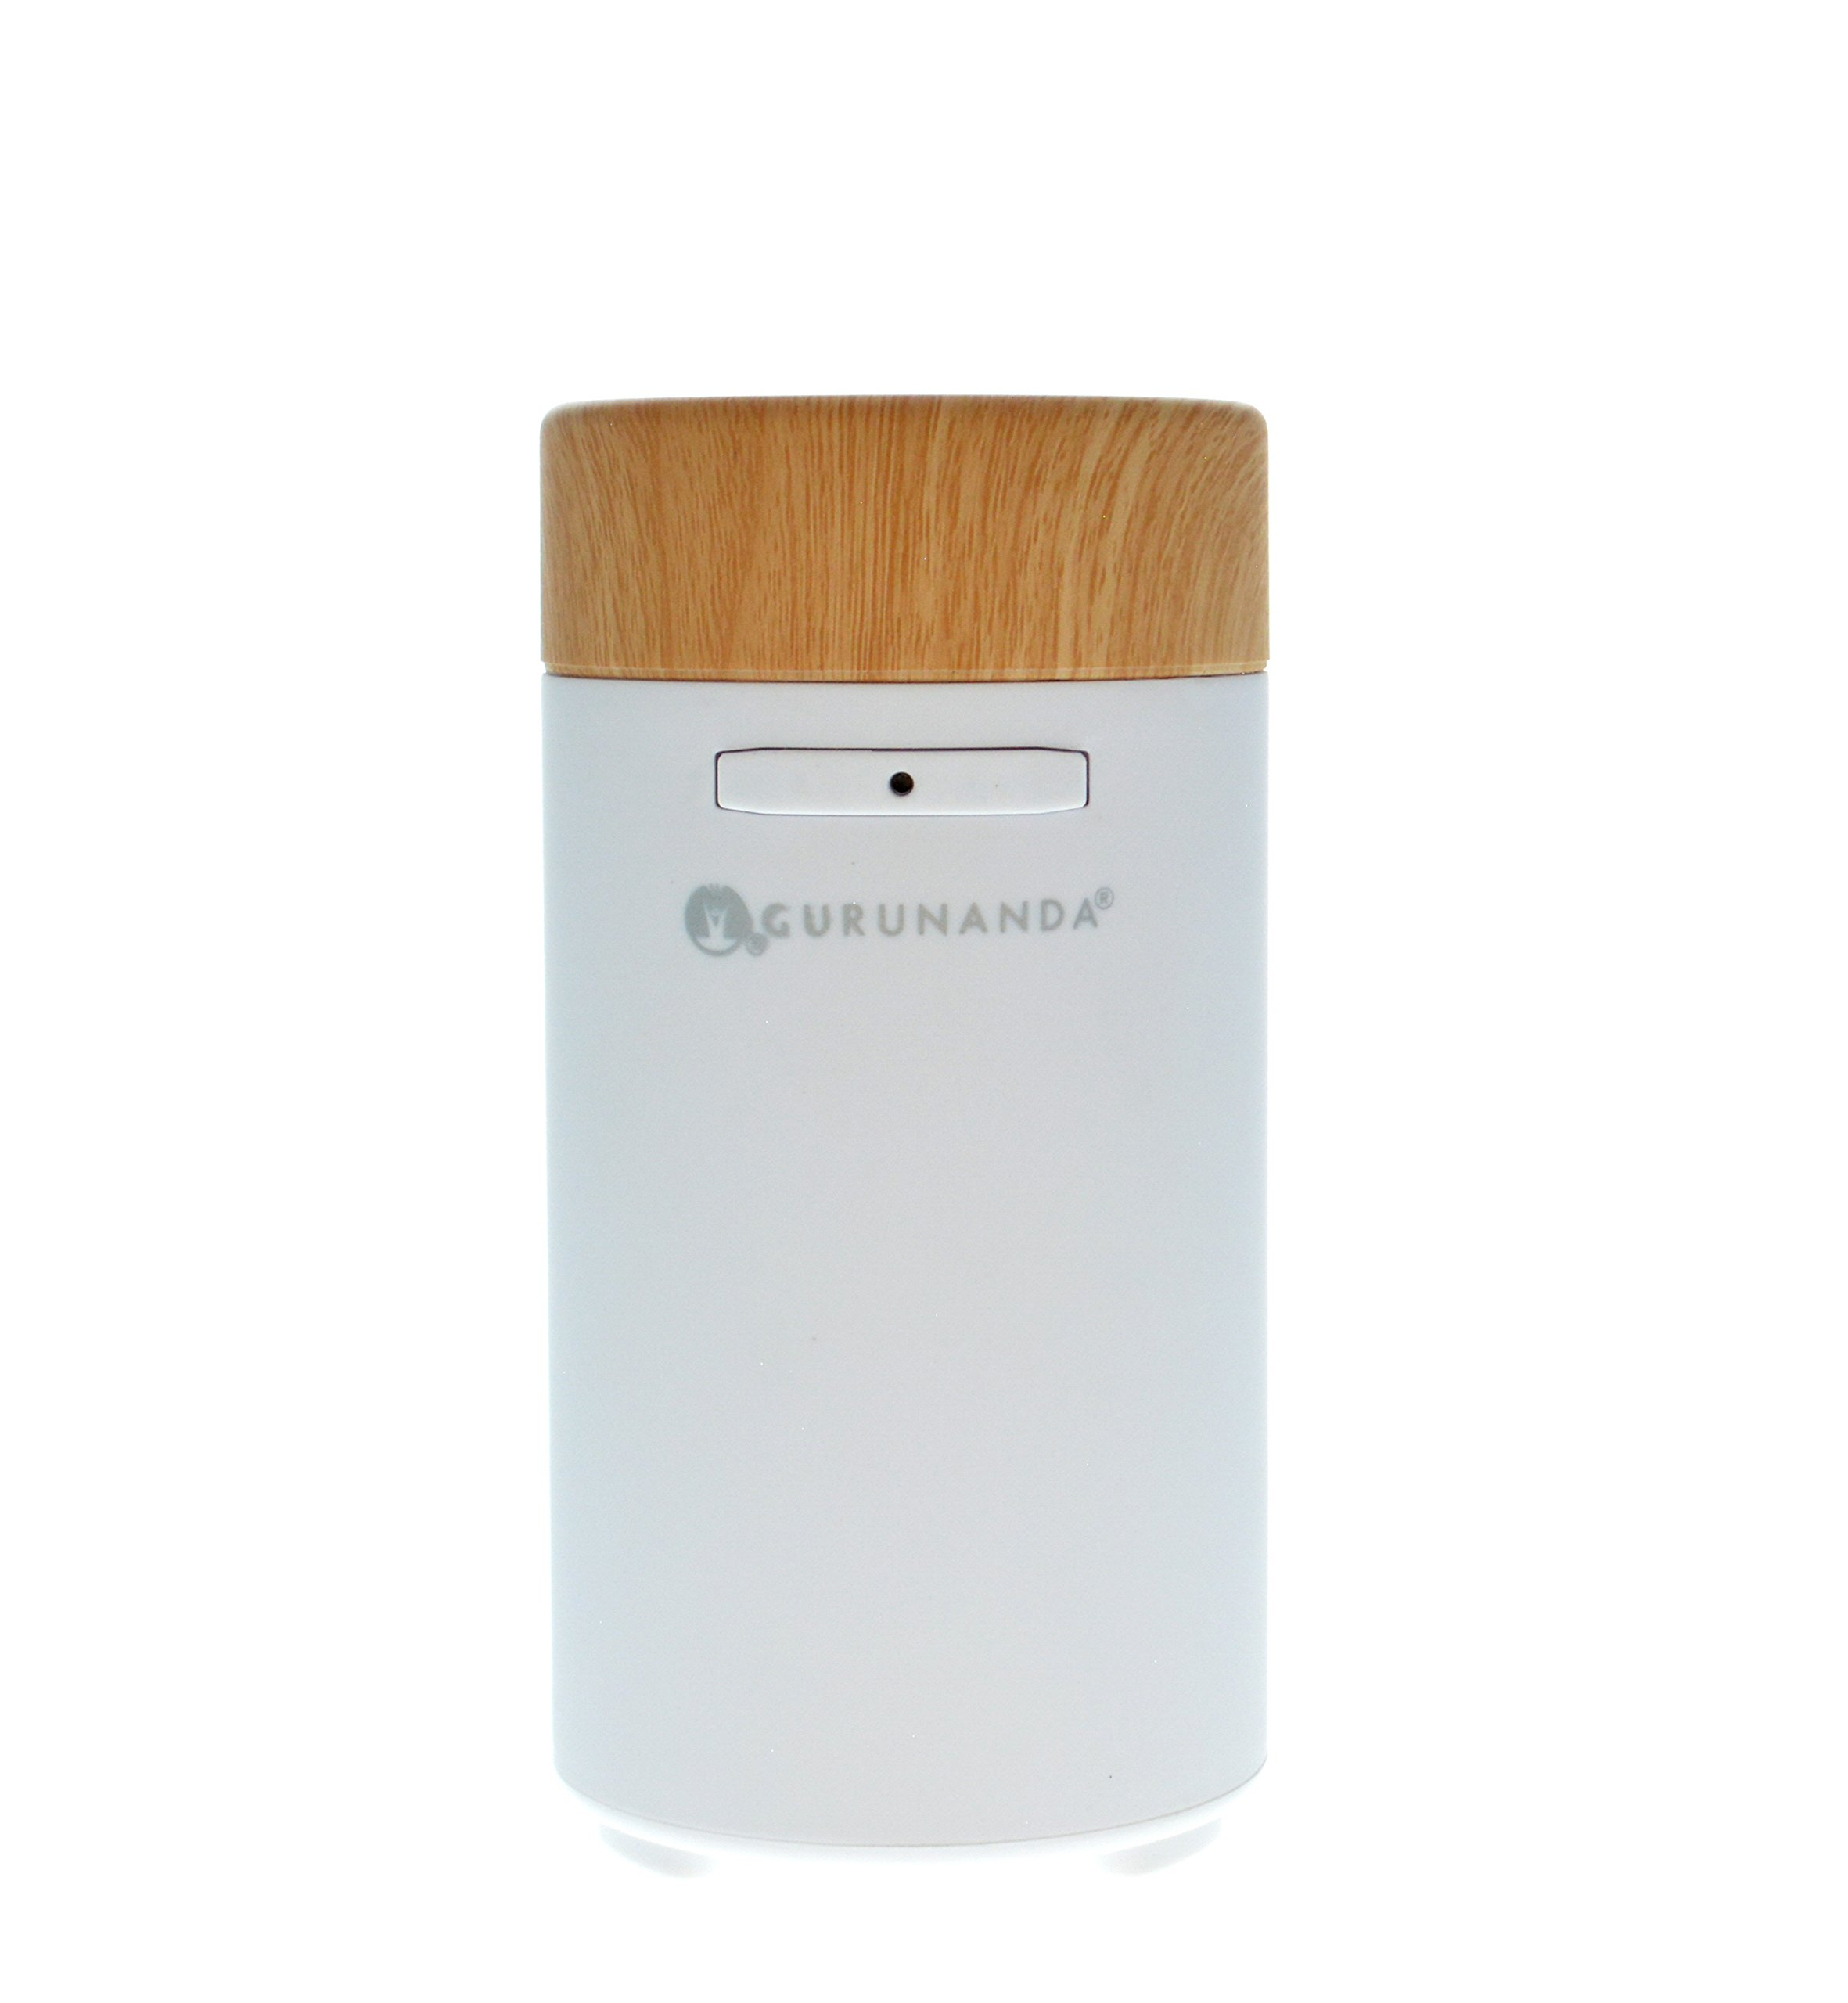 GuruNanda Portable White Essential Oil Diffuser for Car, Home, Office ~ Aromatherapy Ultrasonic Mist Essential Oils Diffusers ~ Travel-Size, Humidifiers No water needed, Fits in Cup Holder!